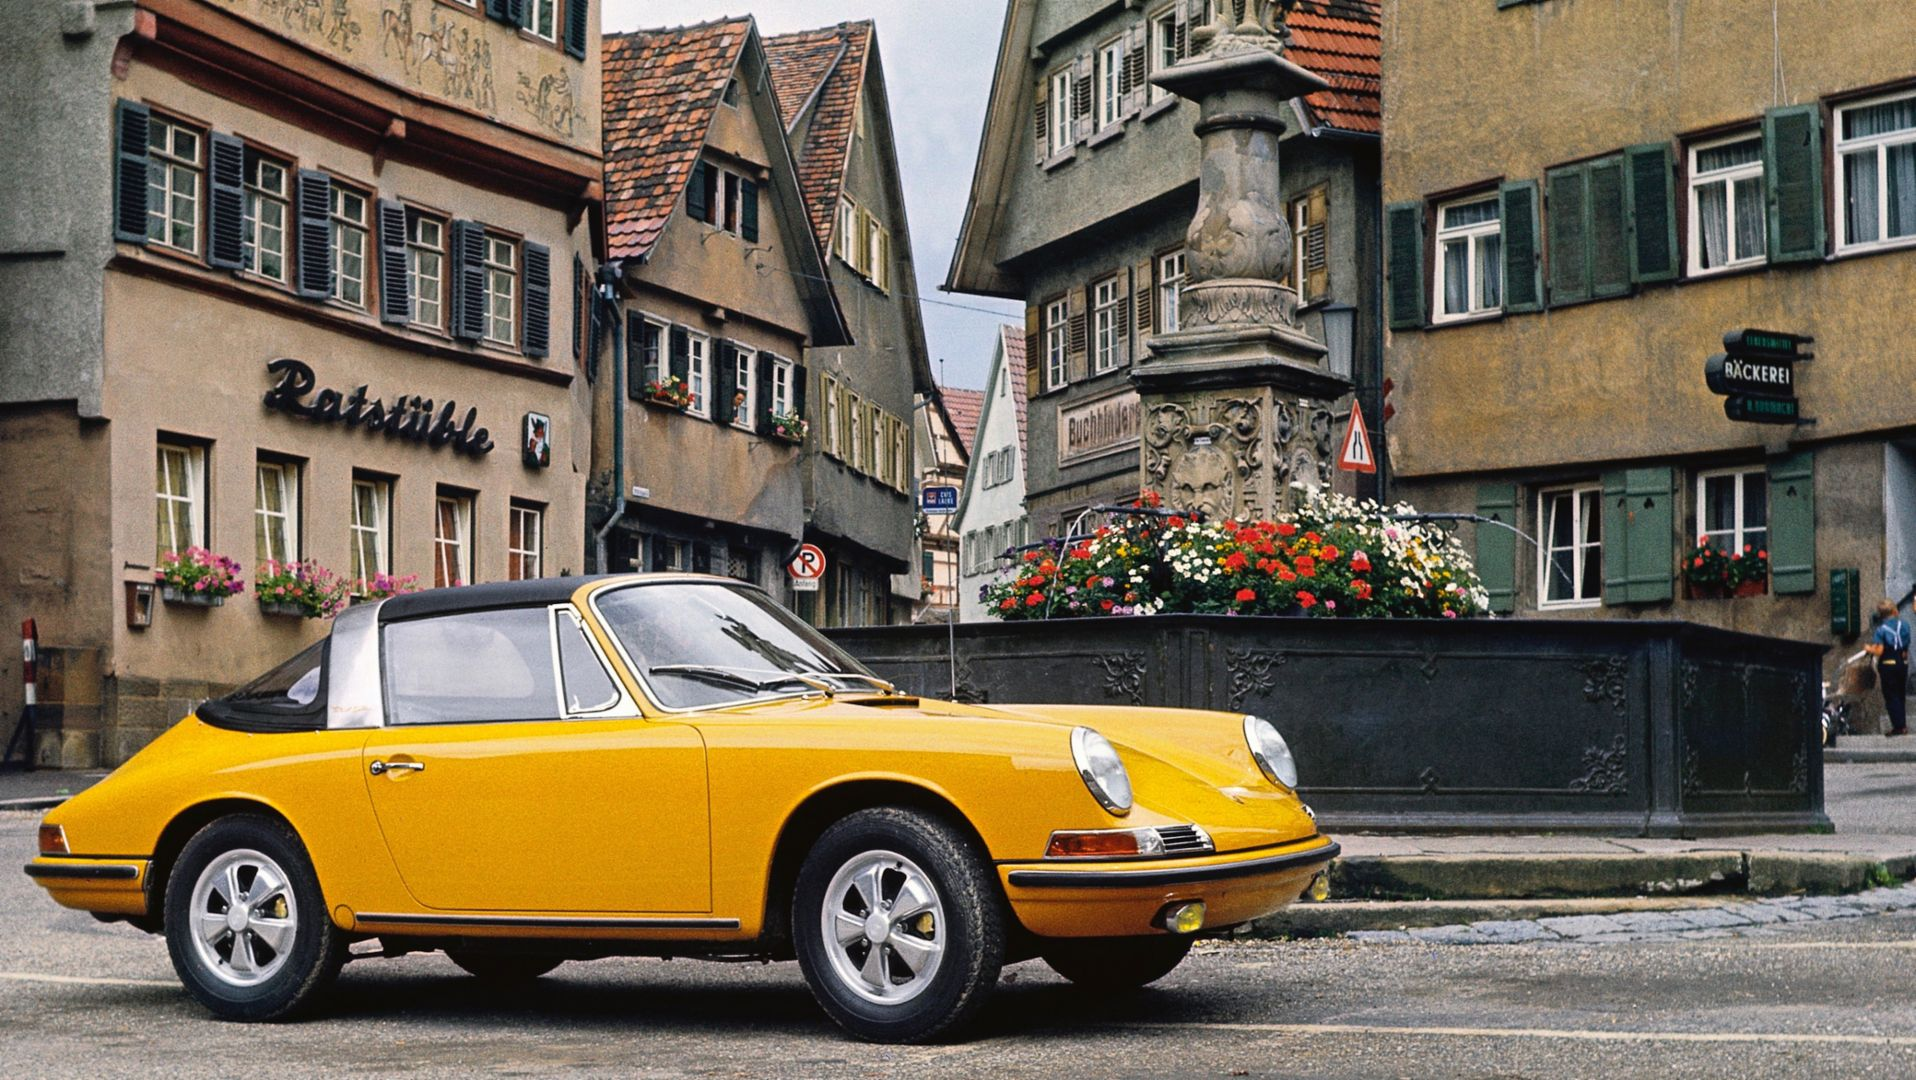 Porsche 911 S 2.0 Targa, 1967, Corporate Archives Porsche AG